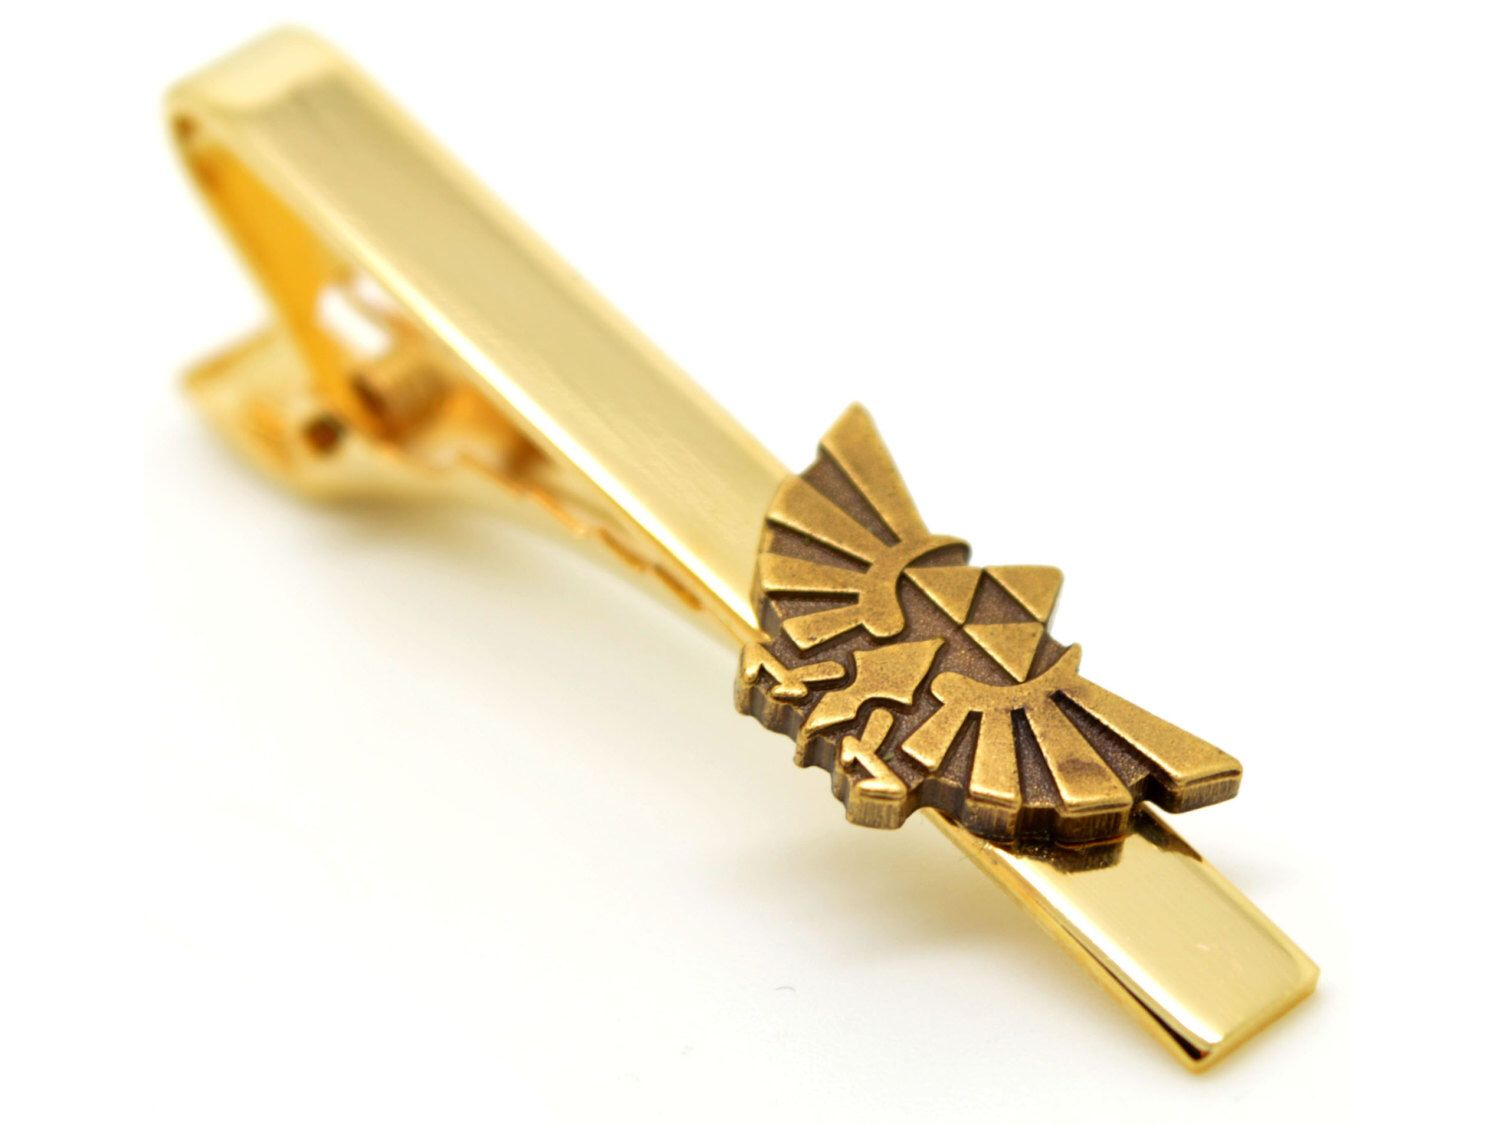 Legend of Zelda Hyrule Royal Crest Triforce Inspired Tie Clip by ...